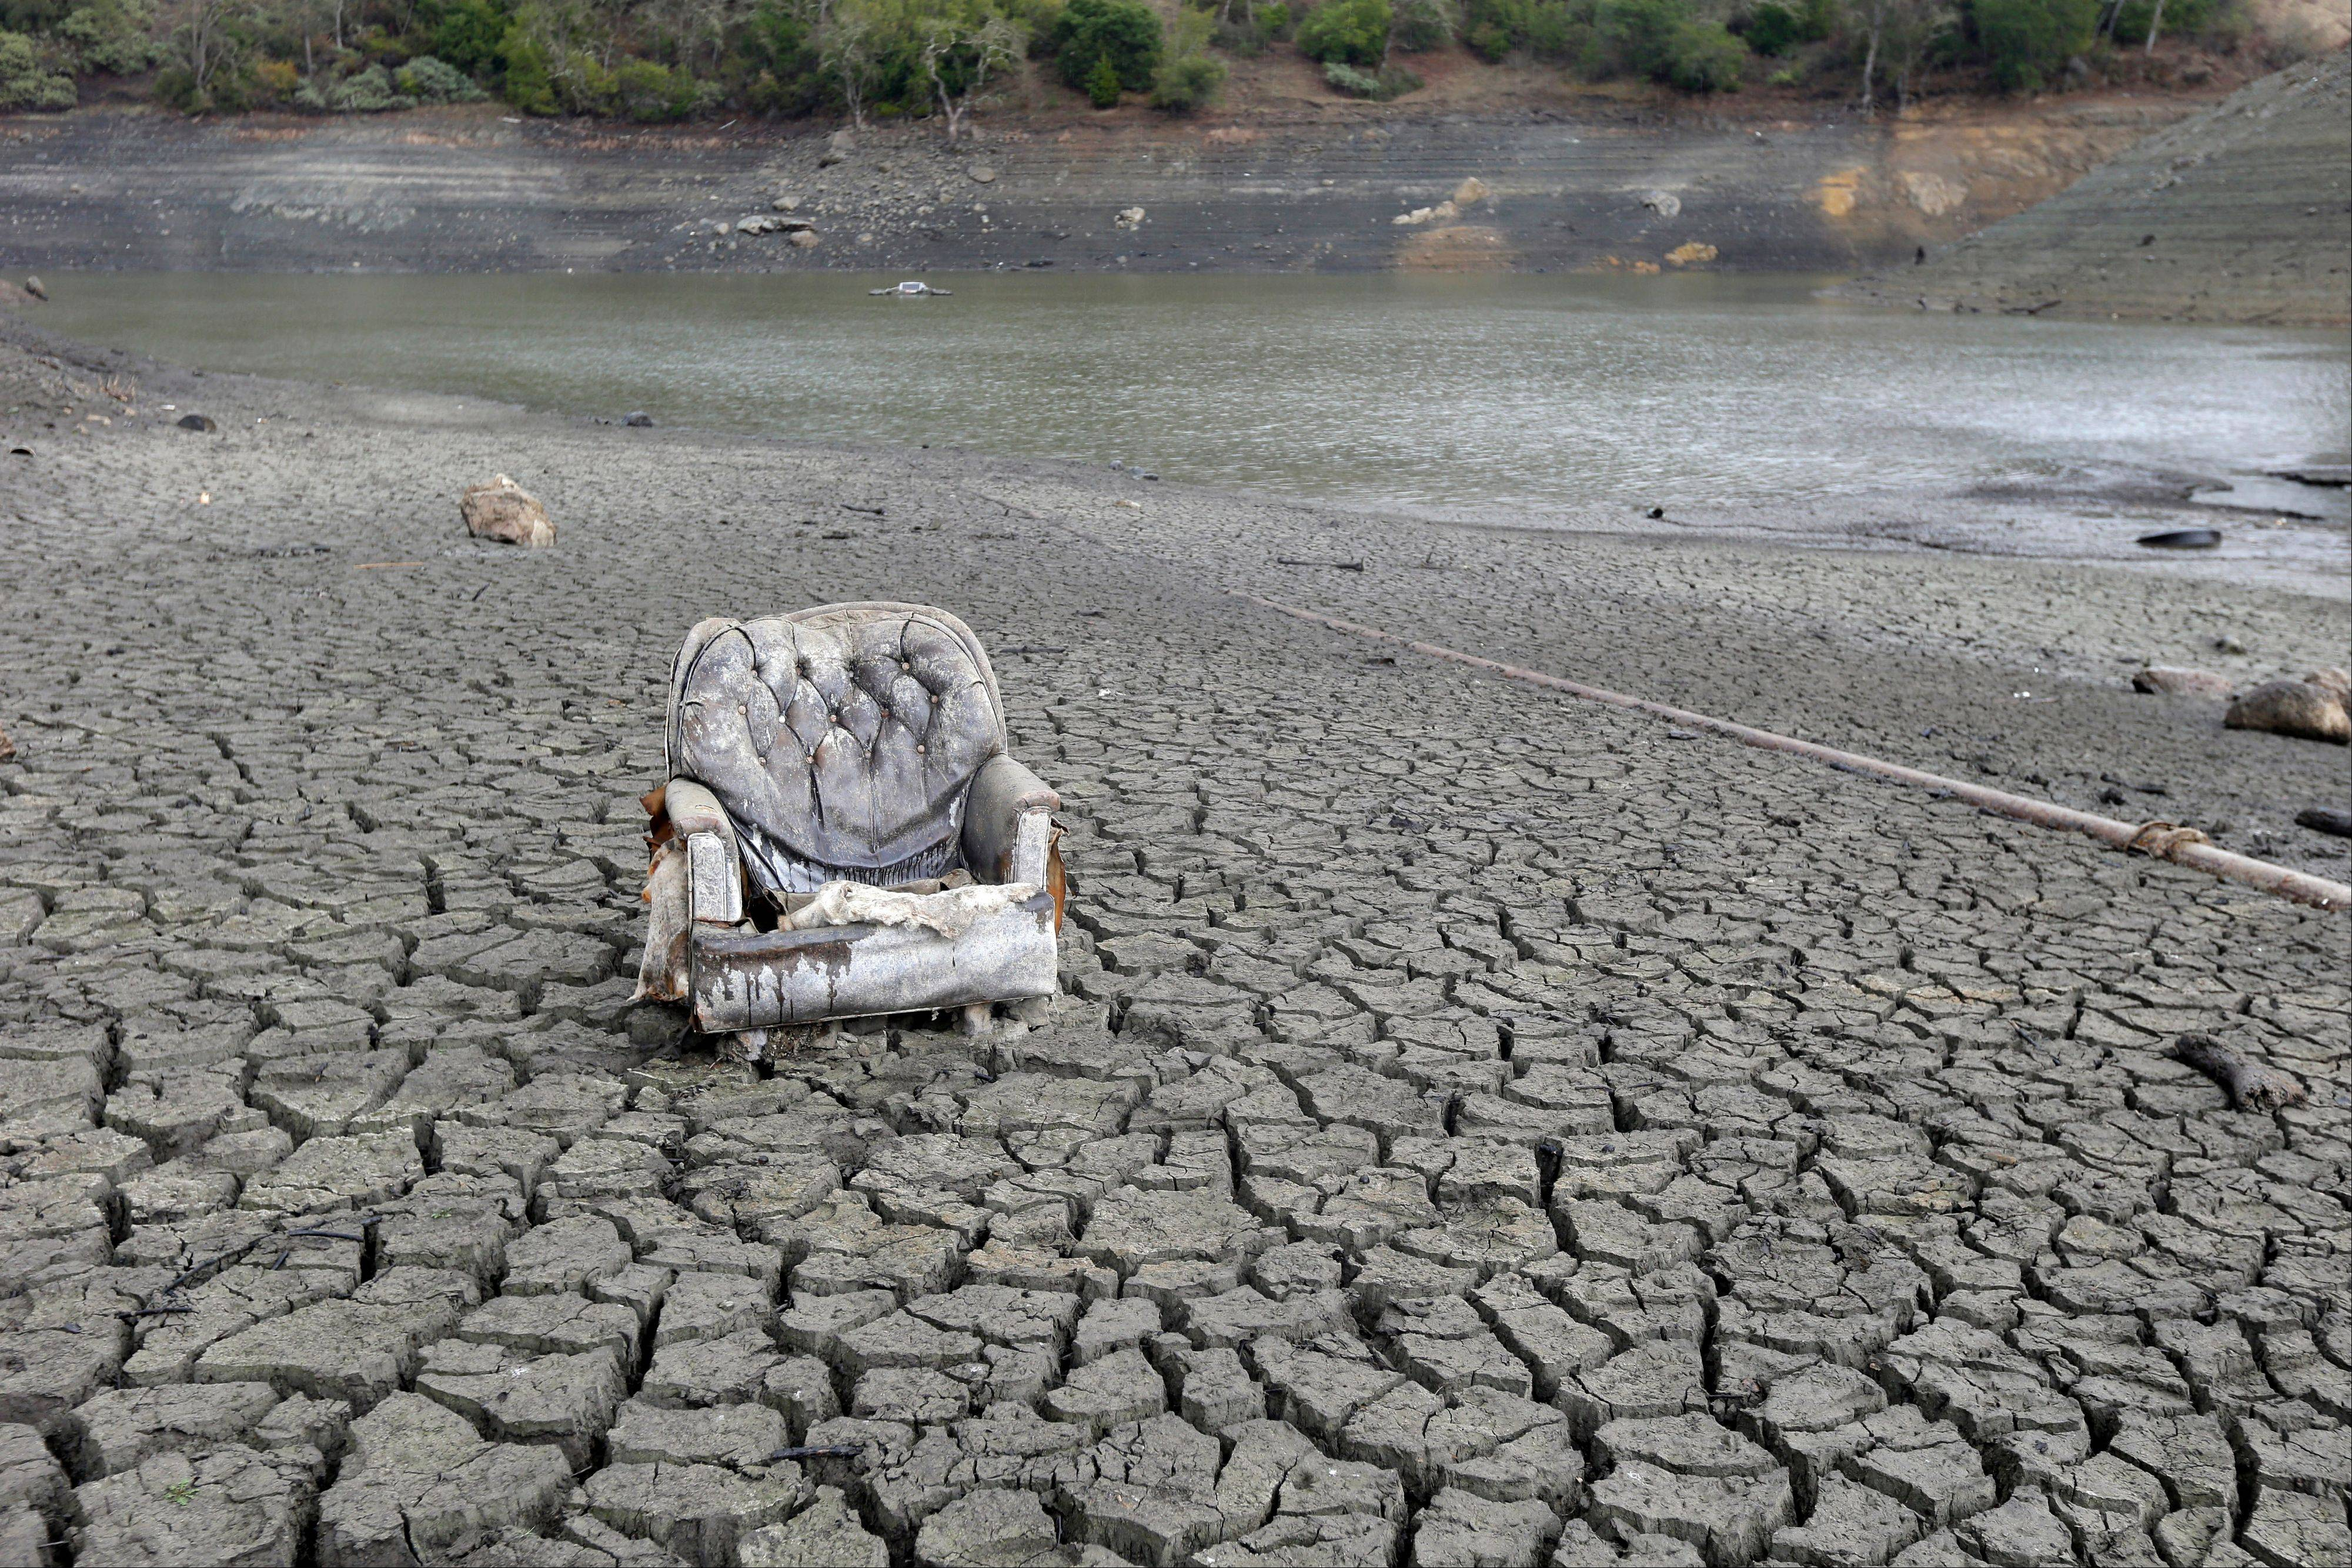 A chair sits exposed Friday on the cracked-dry bed of the Almaden Reservoir in San Jose, Calif.